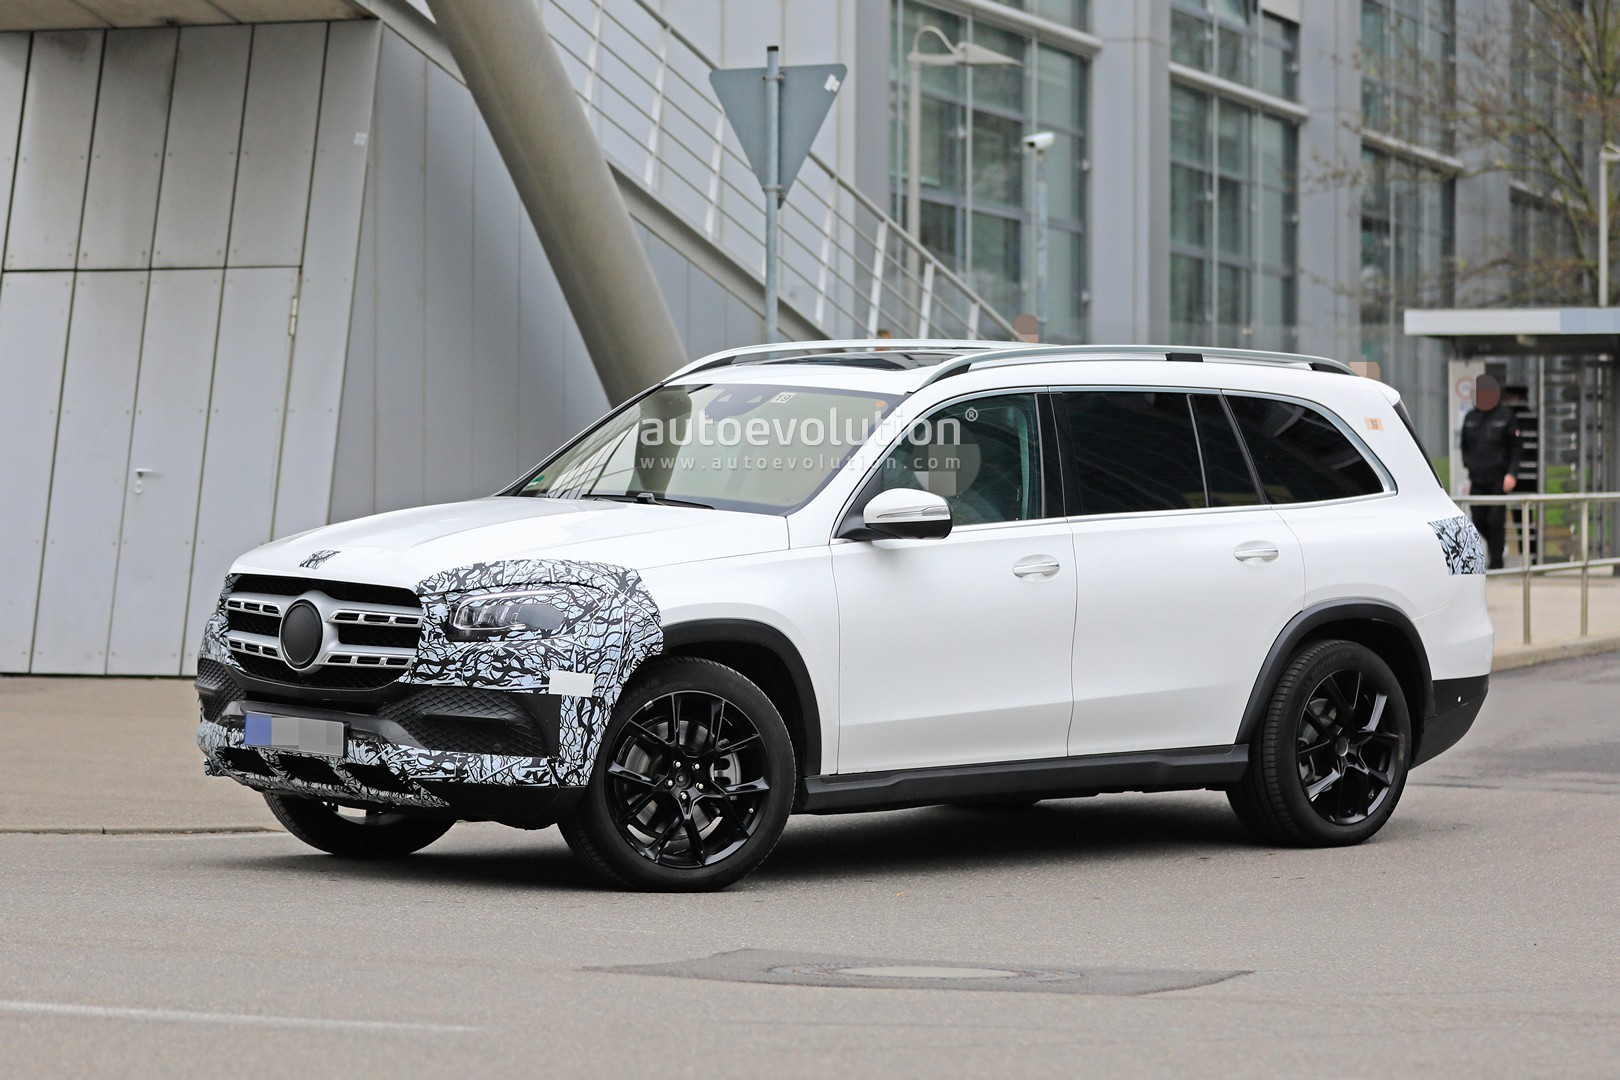 2018 - [Mercedes] GLS II - Page 4 2020-mercedes-benz-gls-class-spied-in-detail-ahead-of-new-york-auto-show-debut_5